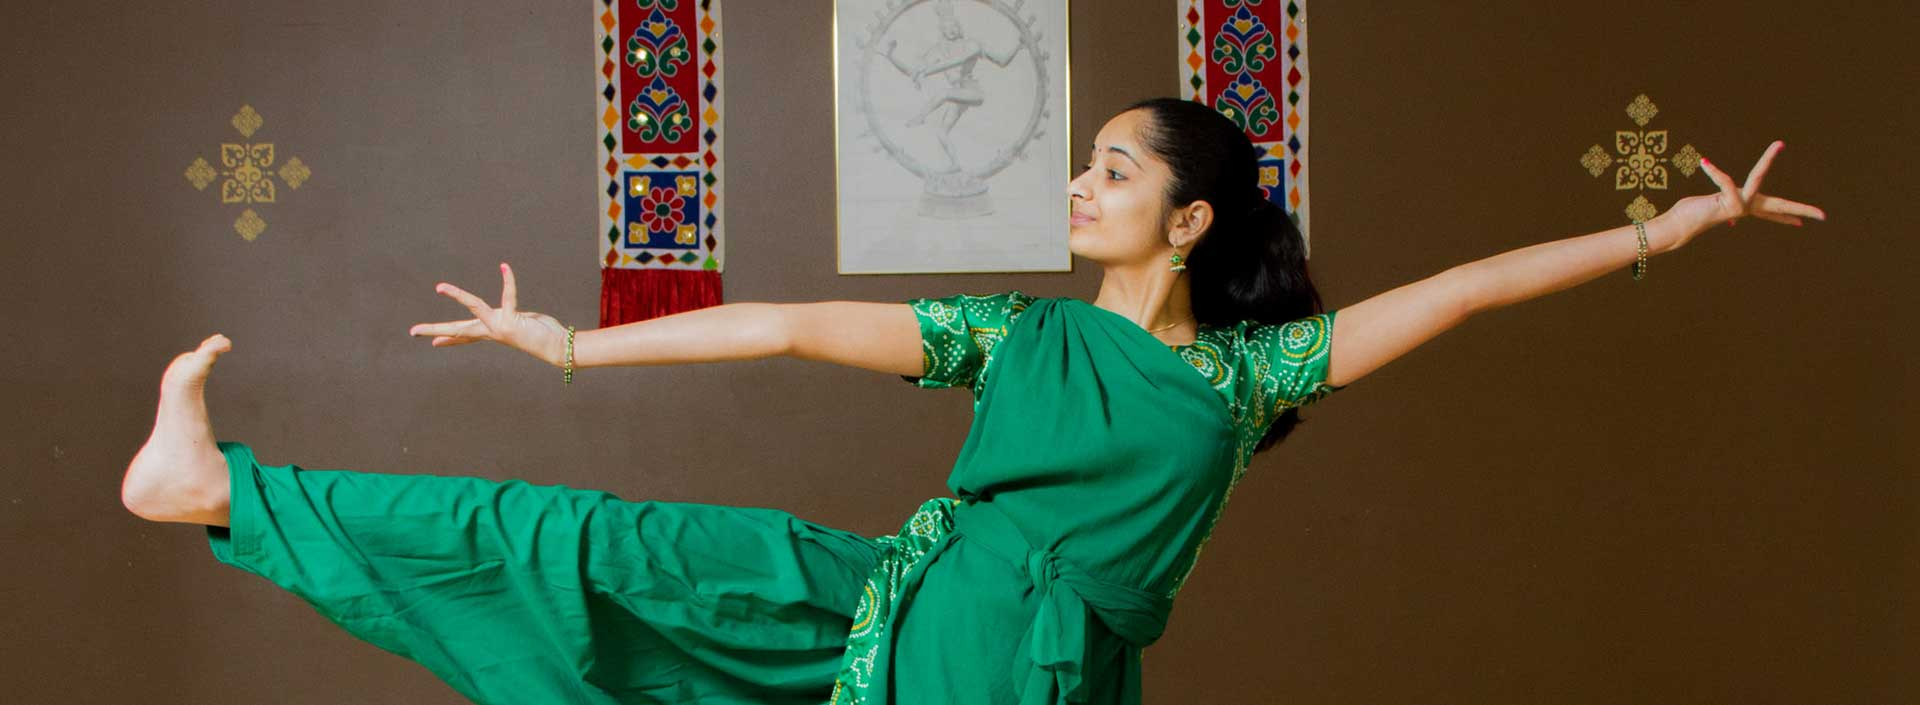 A young woman in traditional Indian dress strikes a dance pose